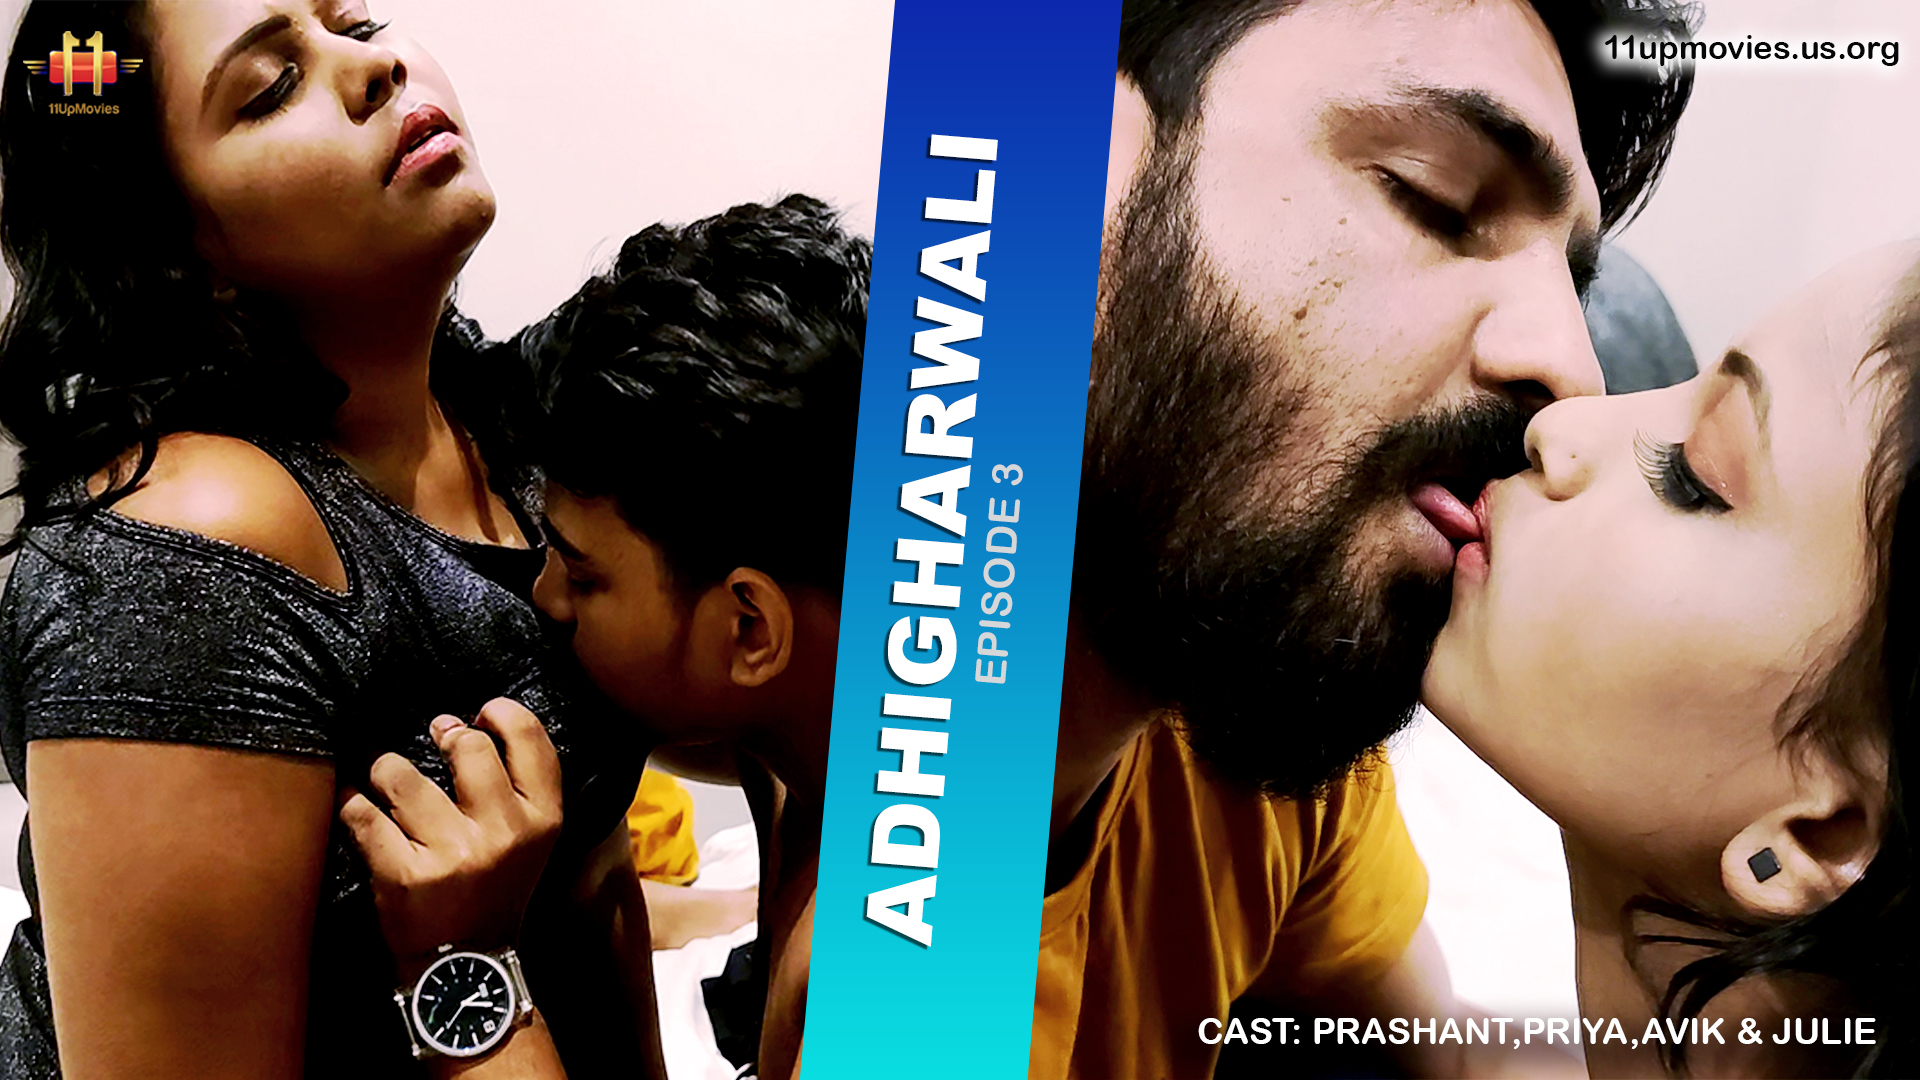 18+ Adhigharwali 2021 S01E03 11UpMovies Hindi Web Series 720p HDRip 200MB x264 AAC